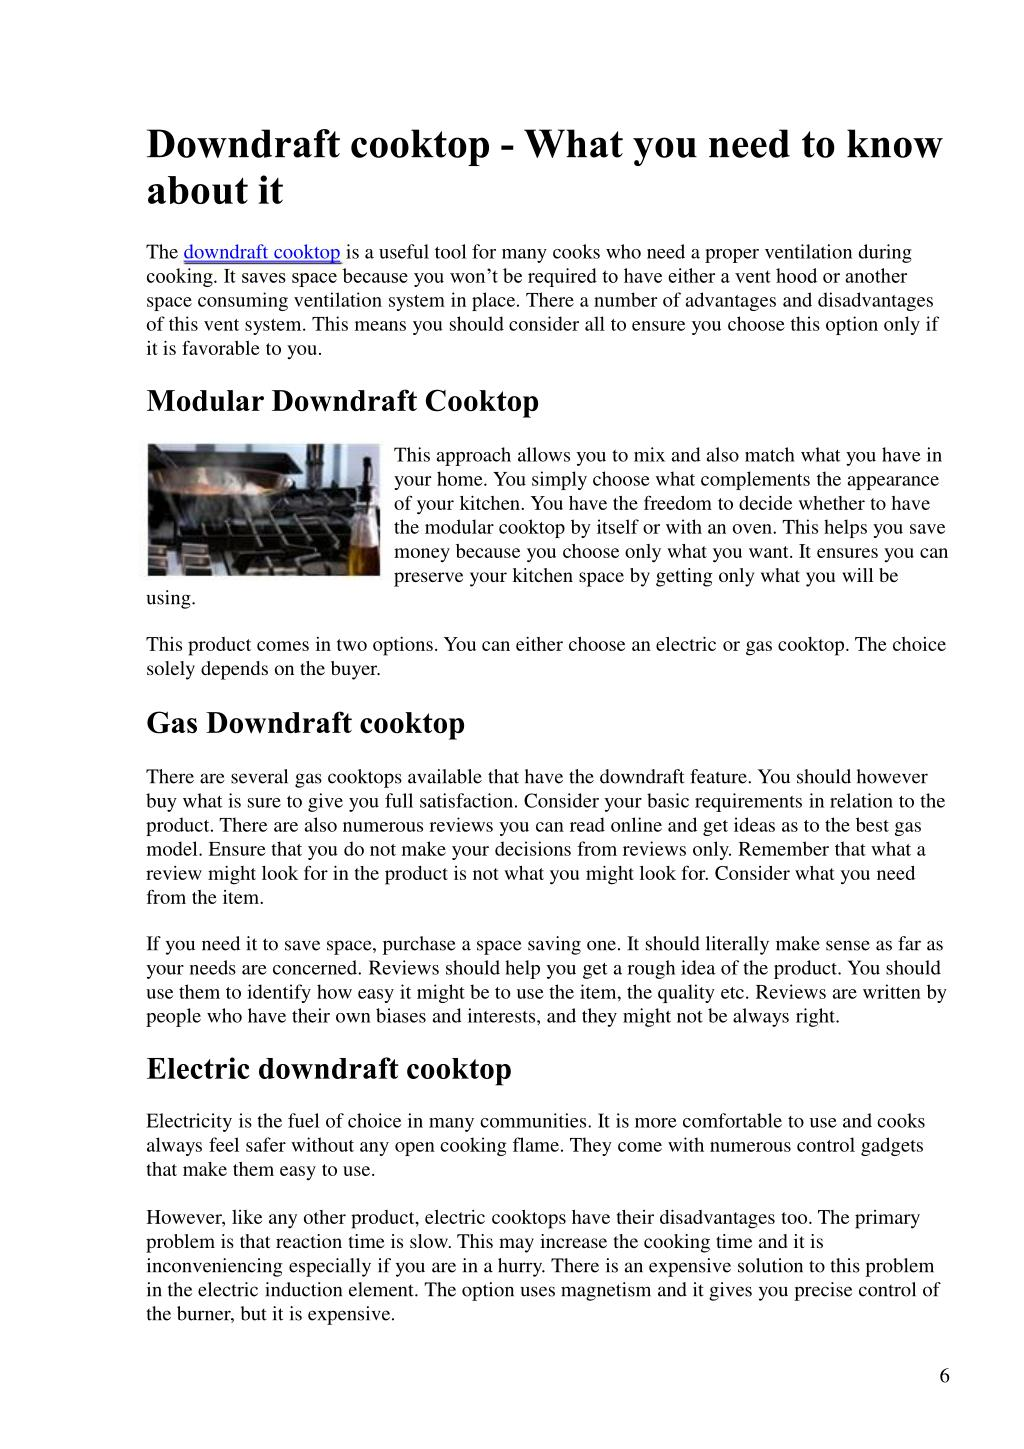 Downdraft cooktop - What you need to know